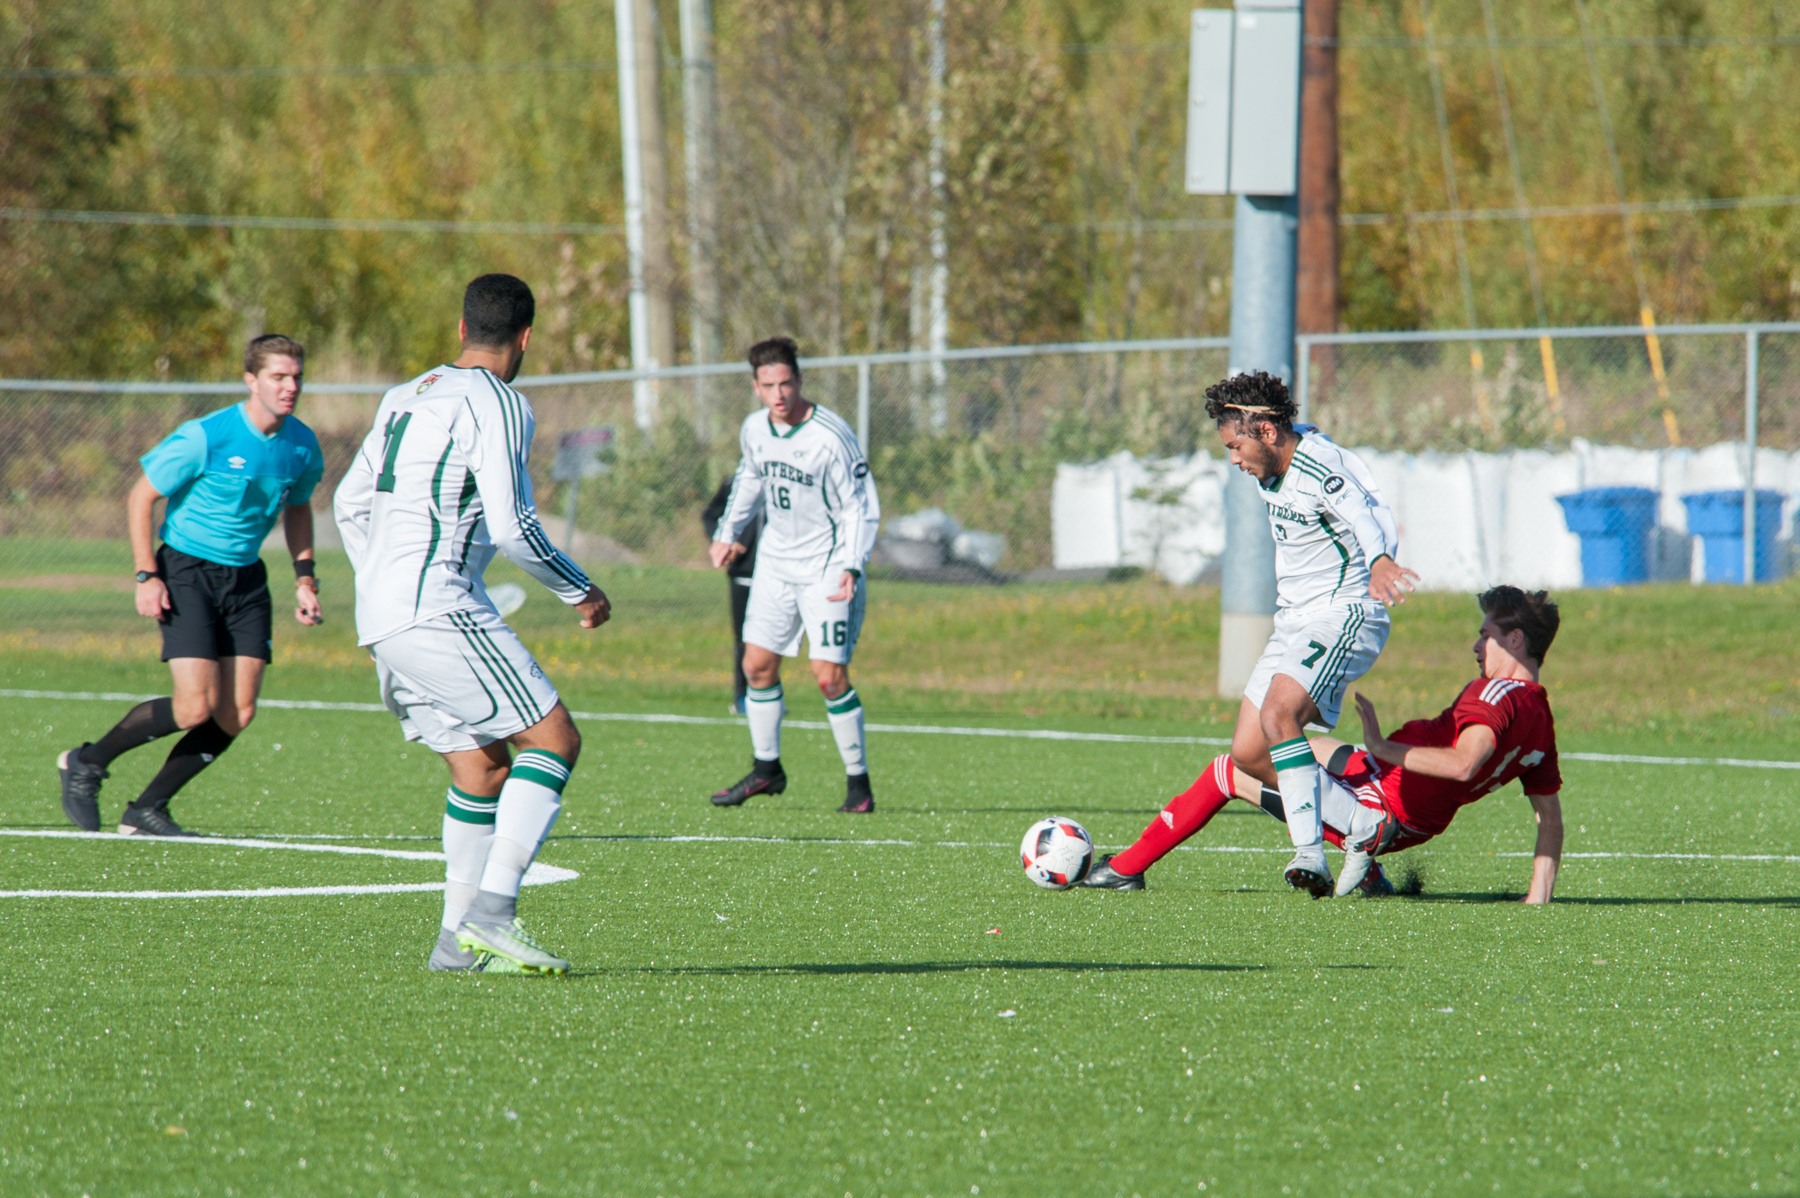 Panthers come up short, fall to UNB 1-0